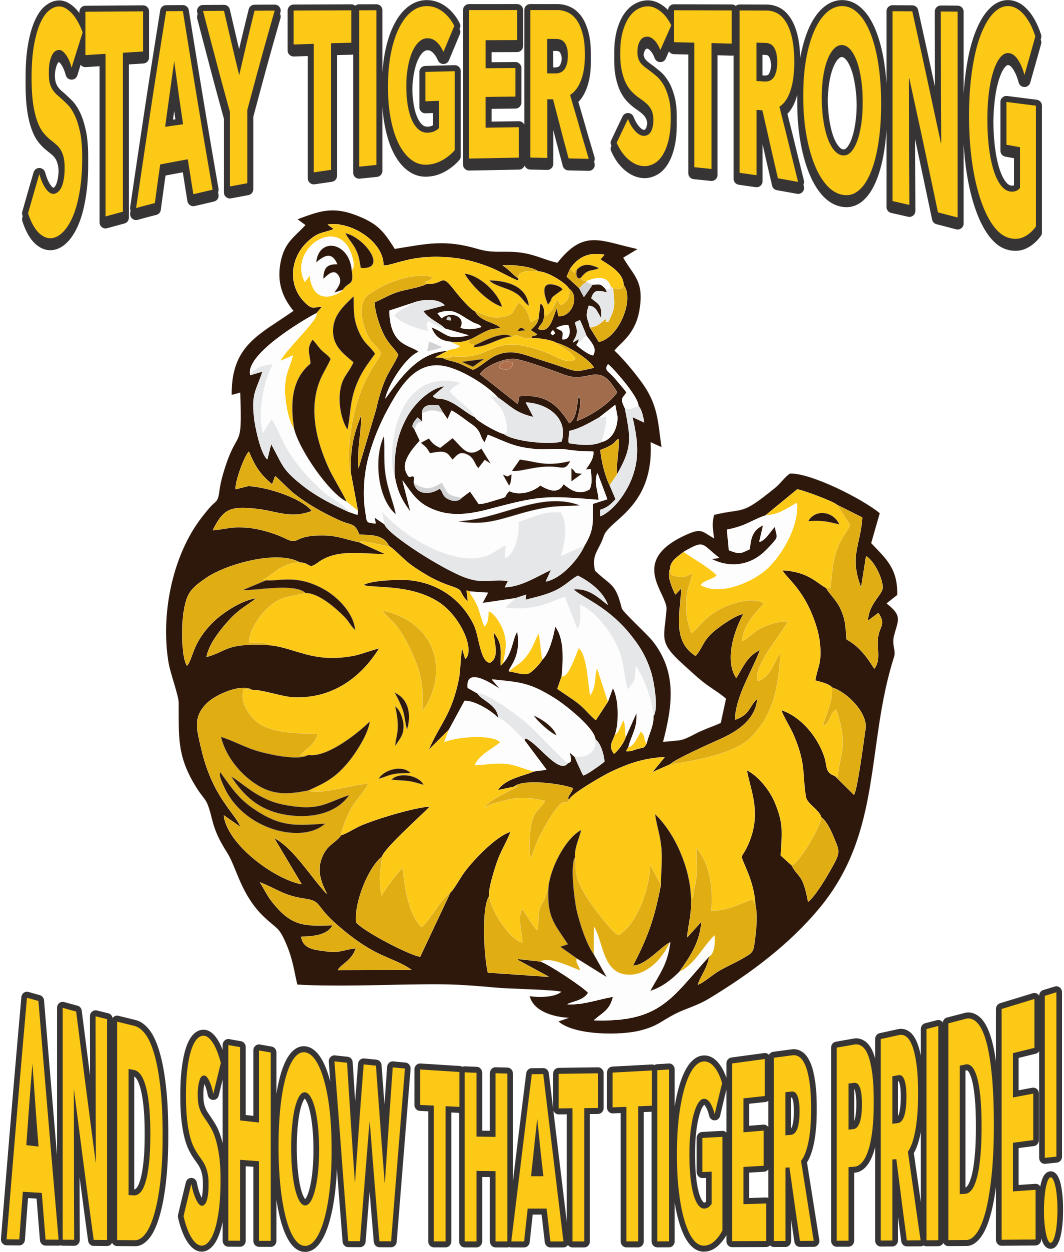 Stay Tiger Strong